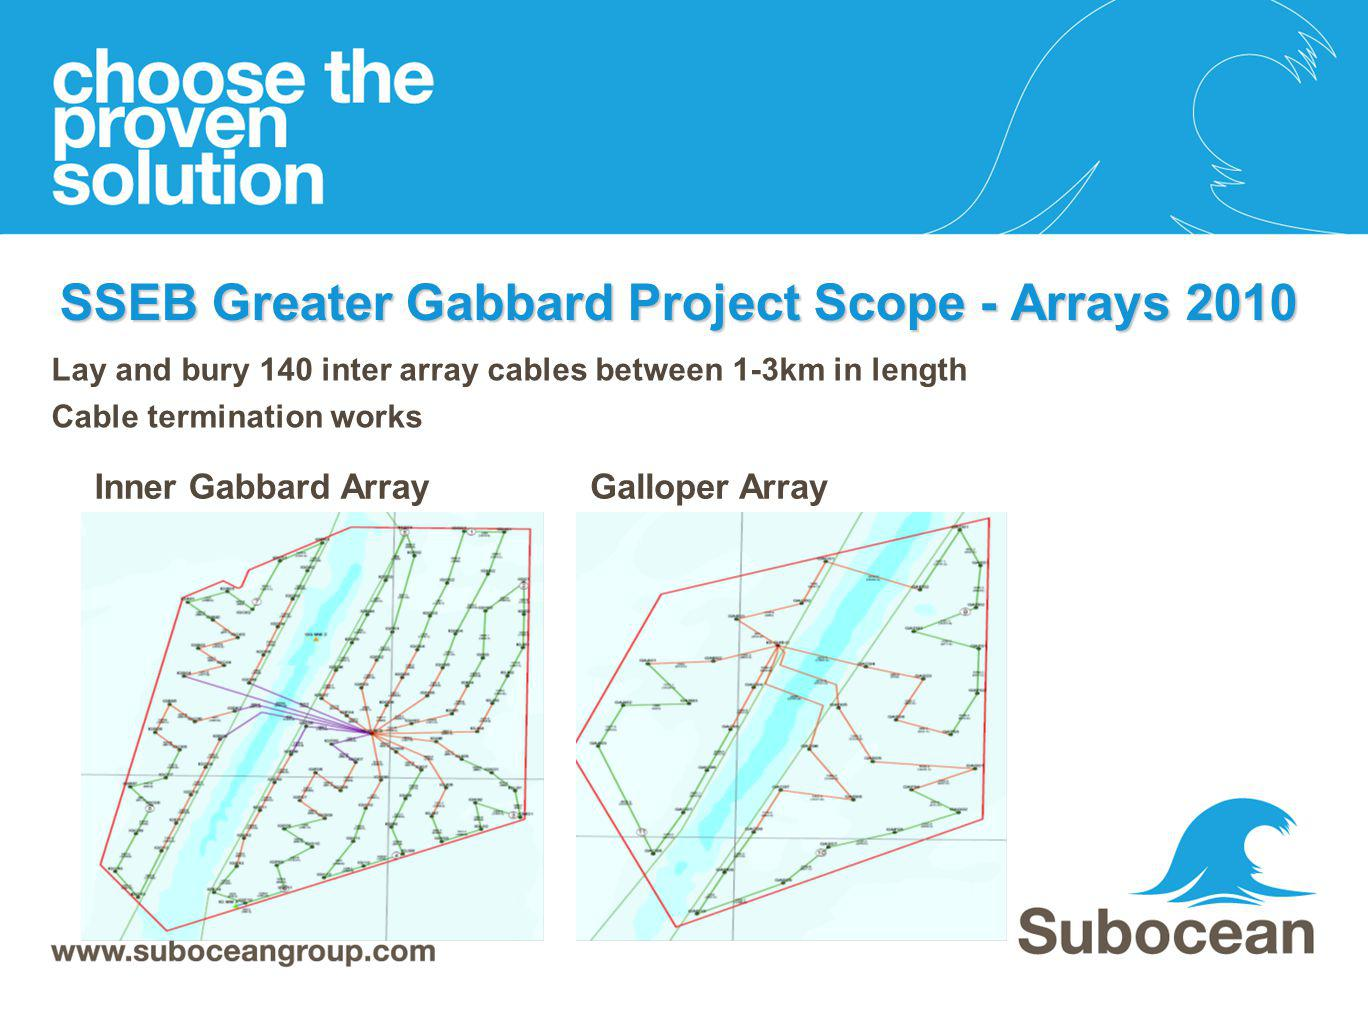 SSEB Greater Gabbard Project Scope - Arrays 2010